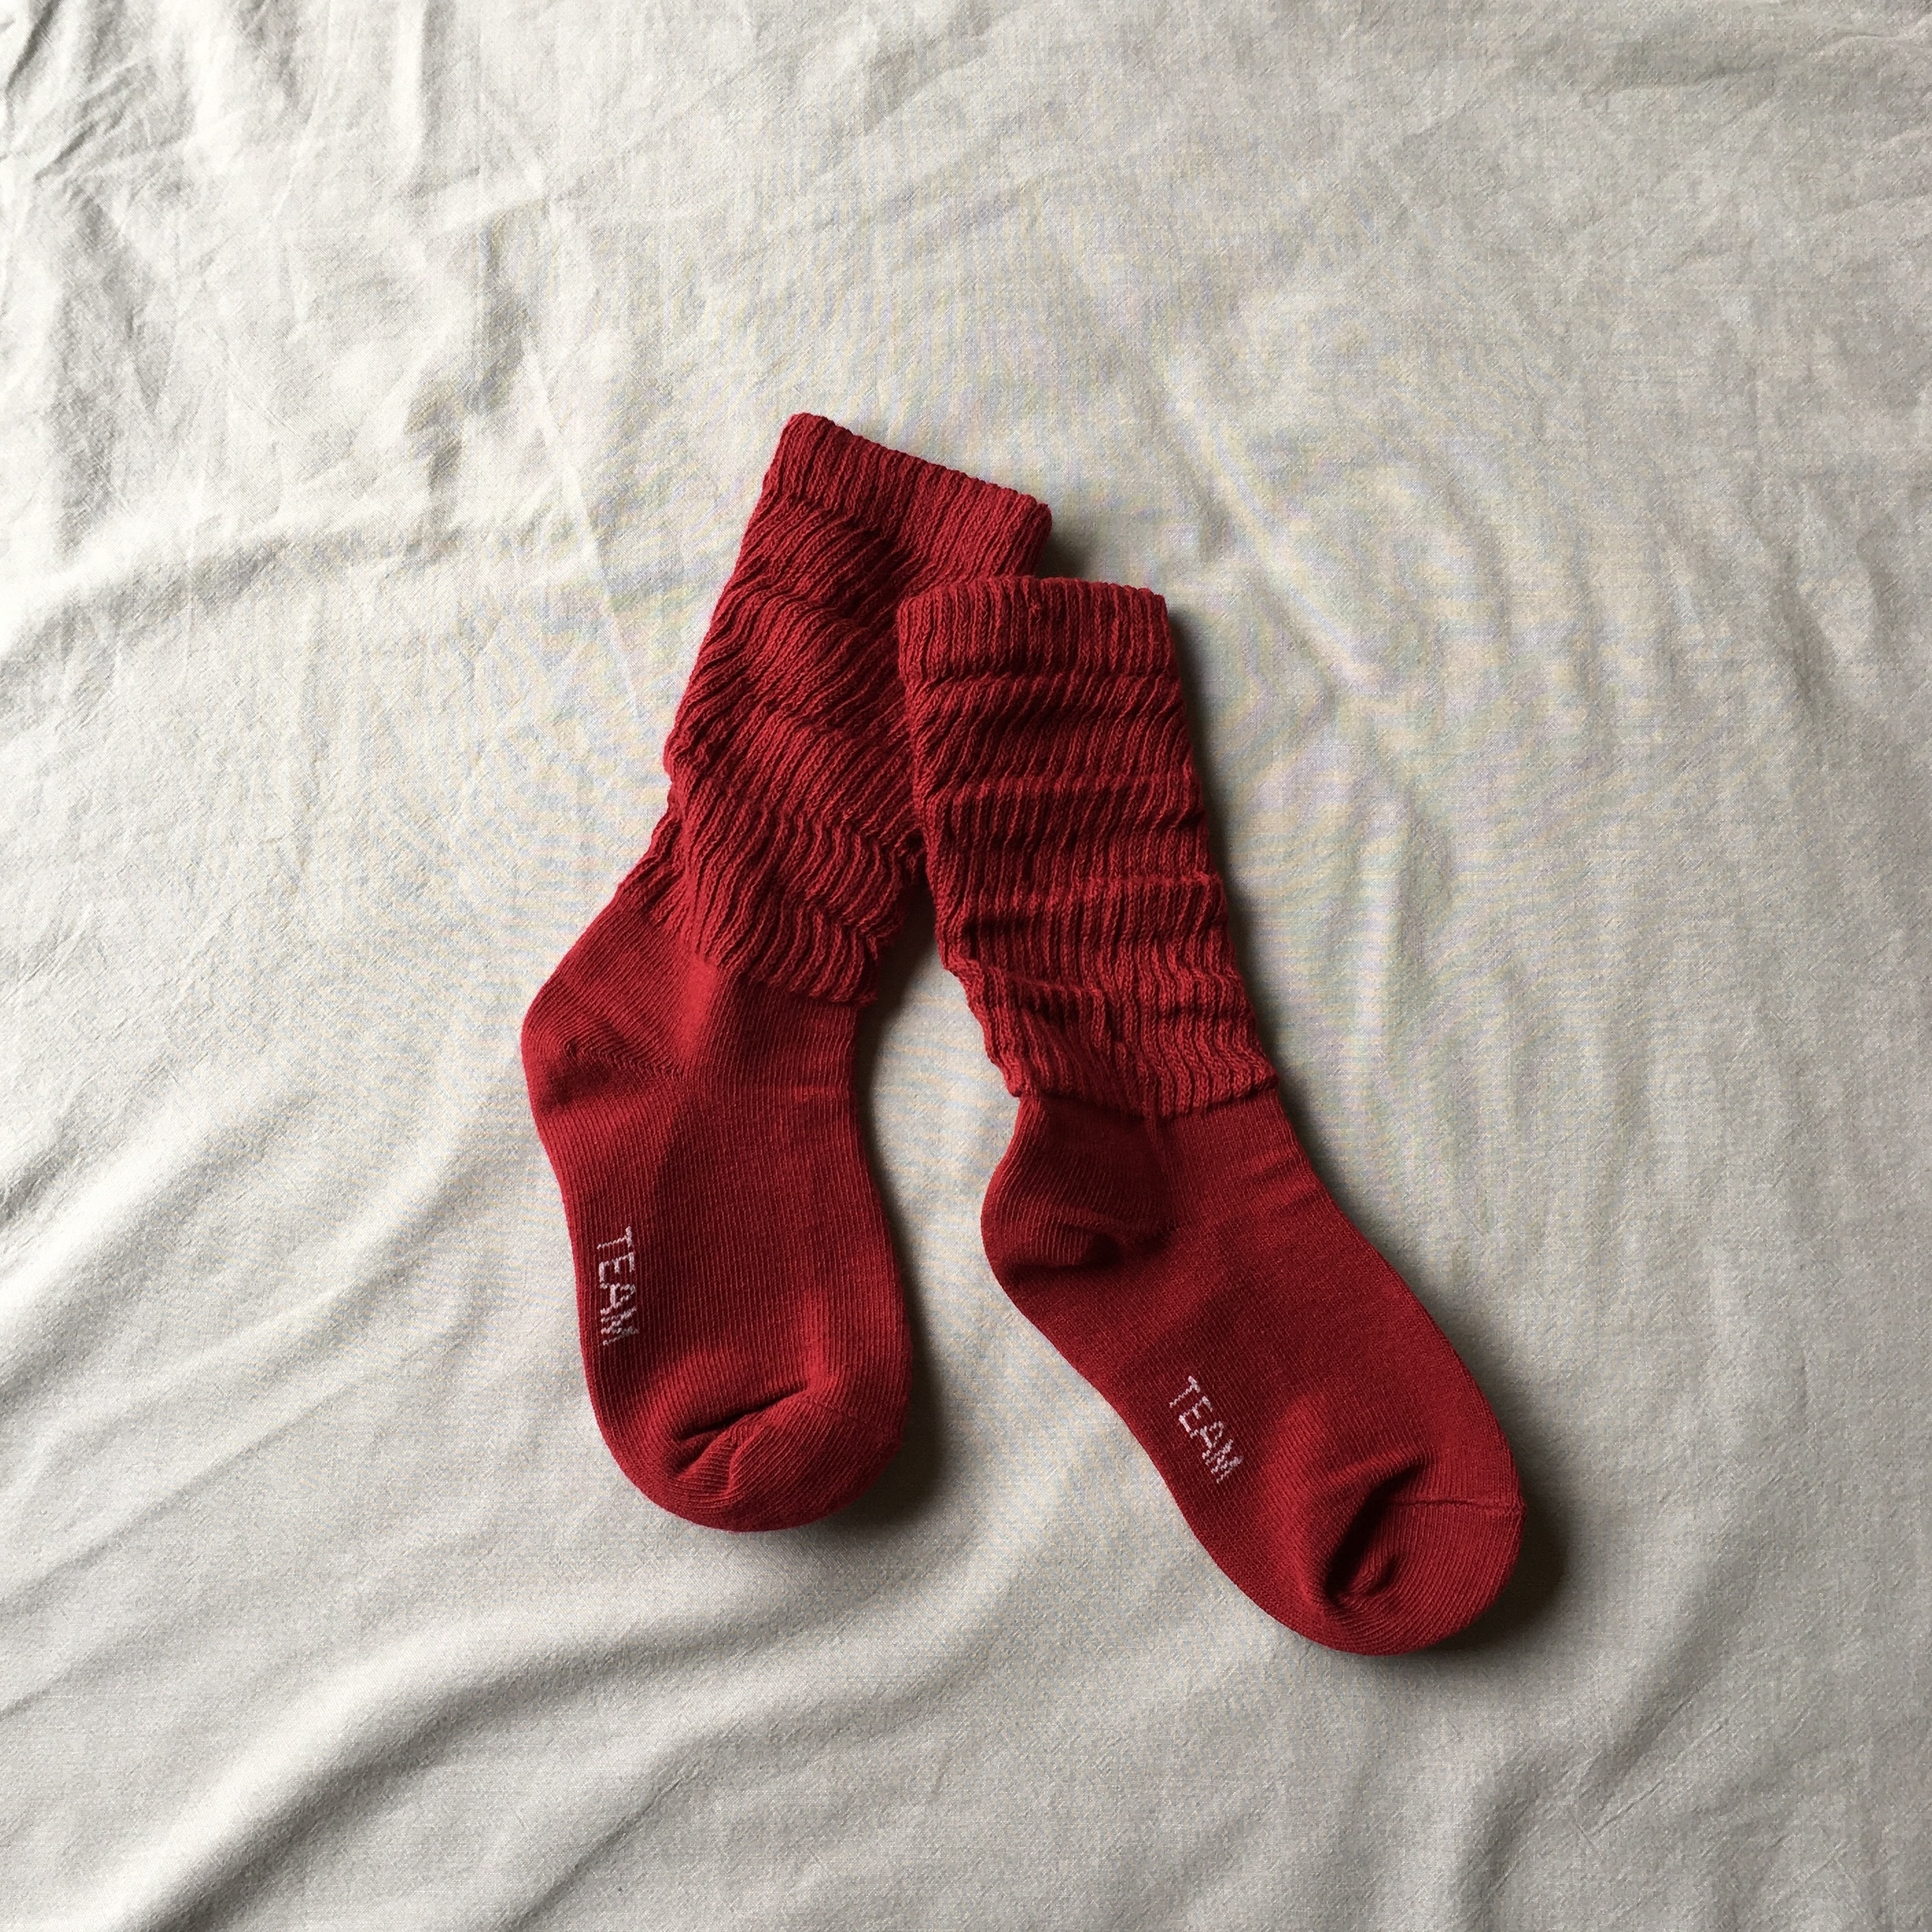 loose socks